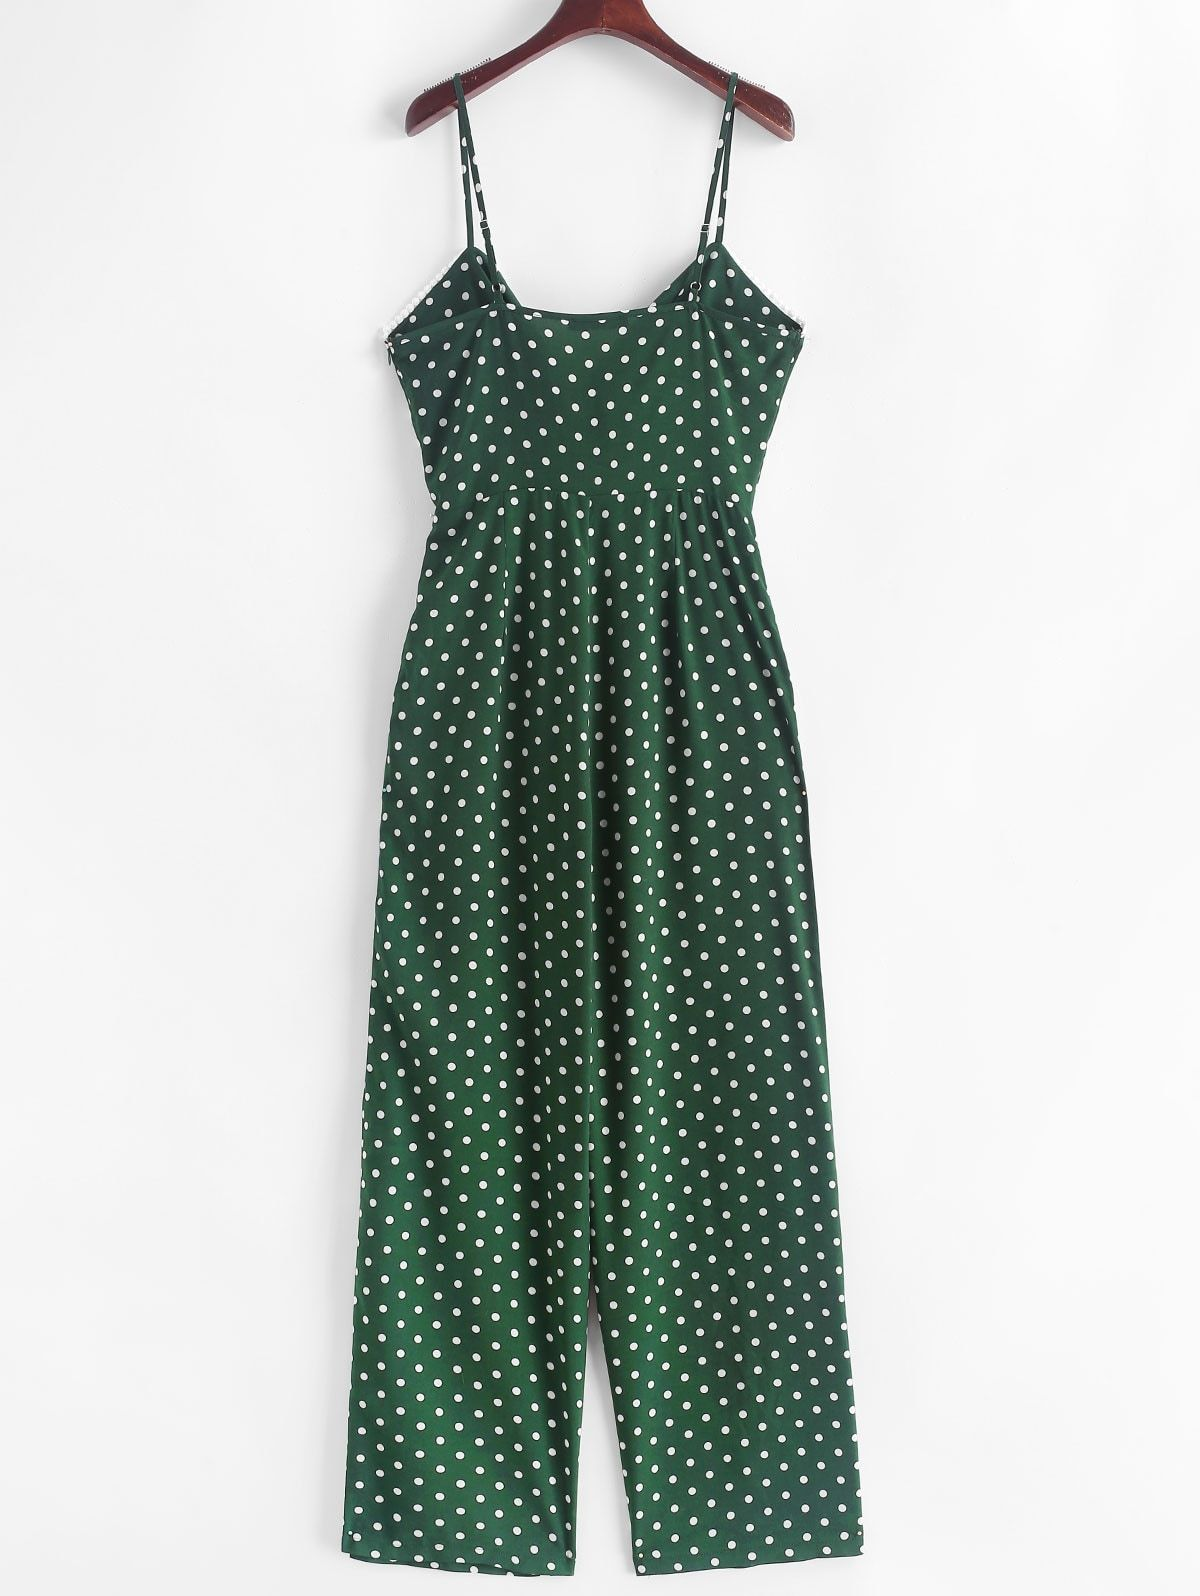 b147653b2a2f Polka Dot Tie Front Cami Jumpsuit in 2019   Styles Inspiration Chic ...